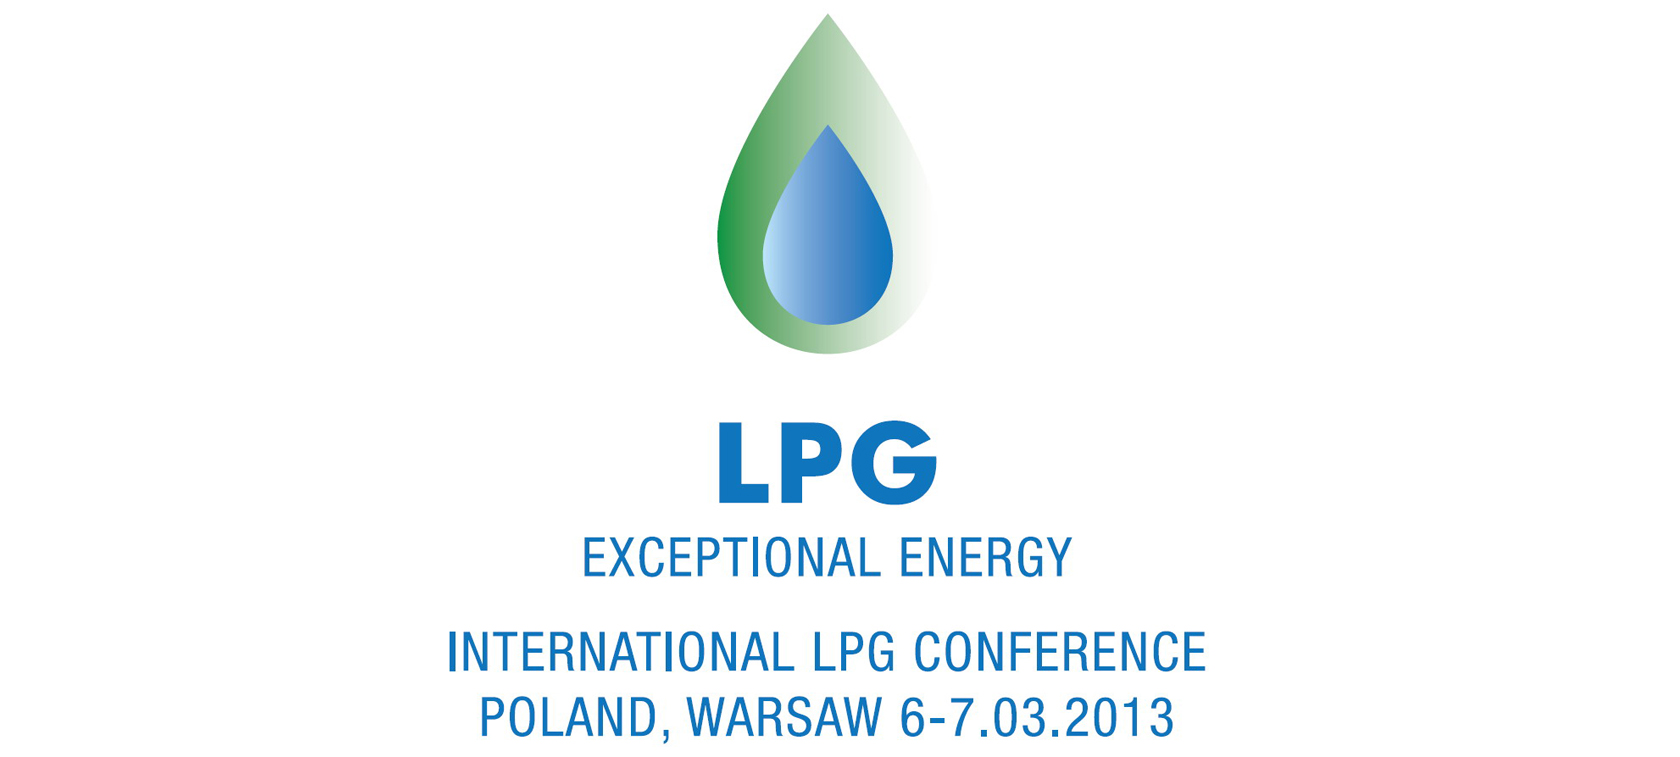 LPG - Exceptional Energy: an exceptional meeting